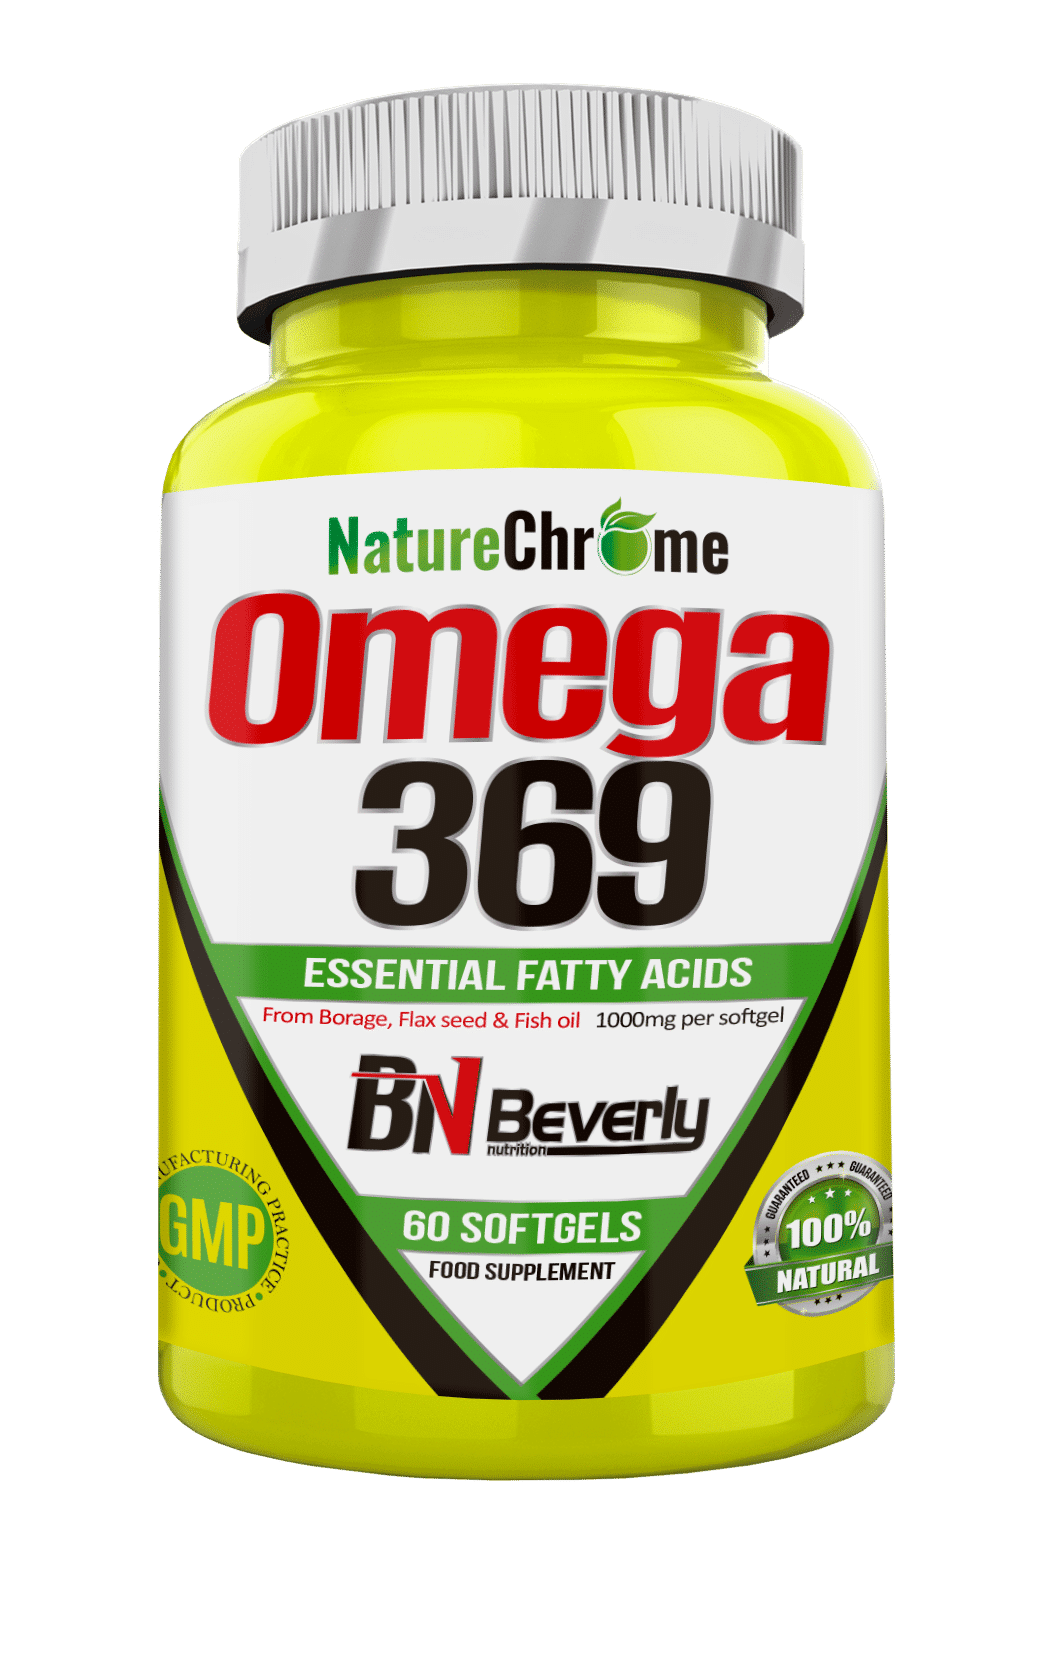 Omega 369 Beverly Nutrition